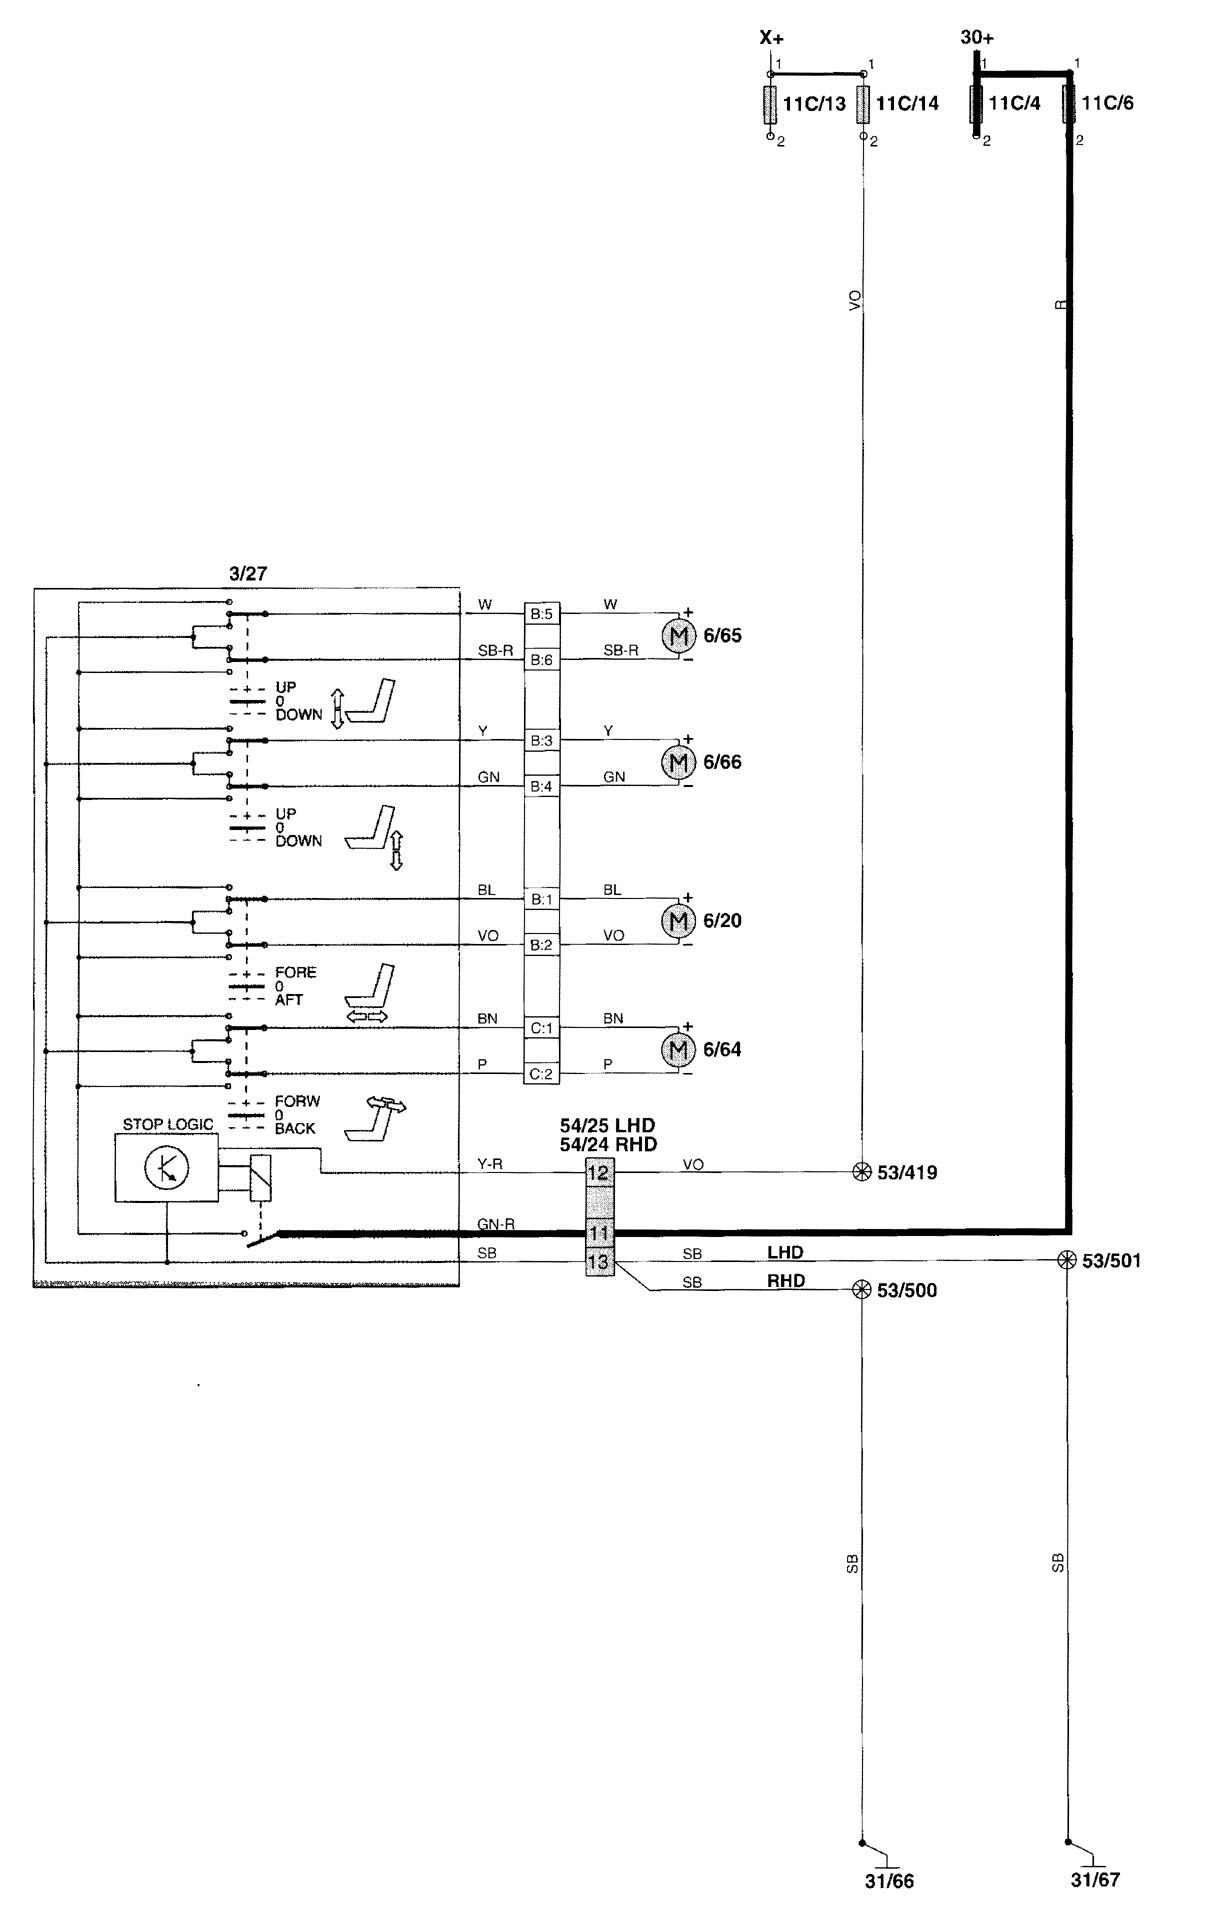 2000 Ford F 250 Power Window Wire Diagram Manual Guide Wiring For Switches 2002 F53 04 Diesel Engine Basic Electrical Diagrams Stove 85 Chevy Switch